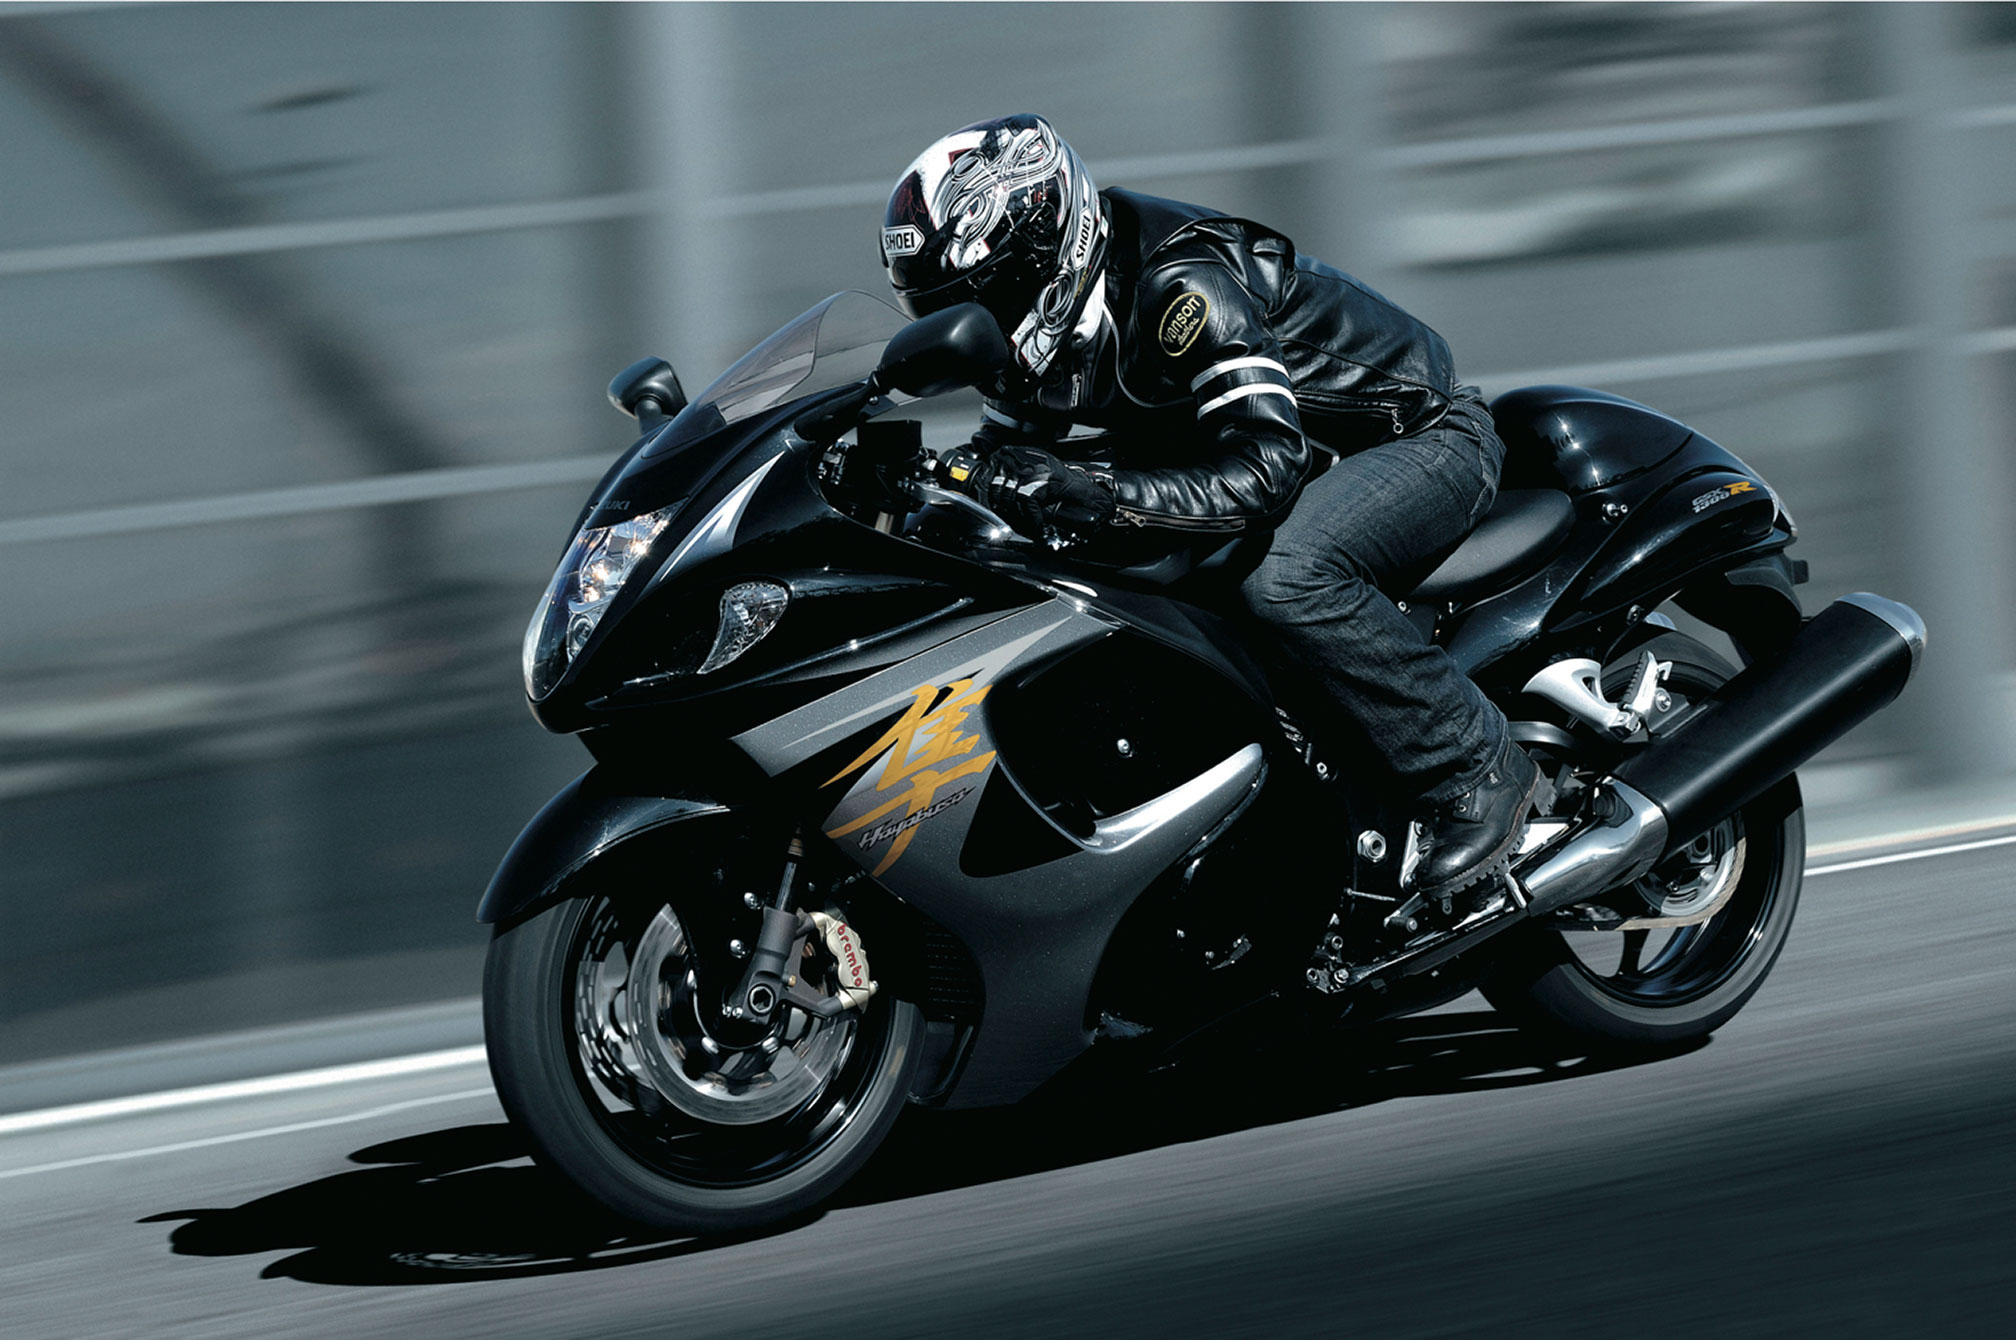 2019 suzuki hayabusa will come with a semi-automatic transmission